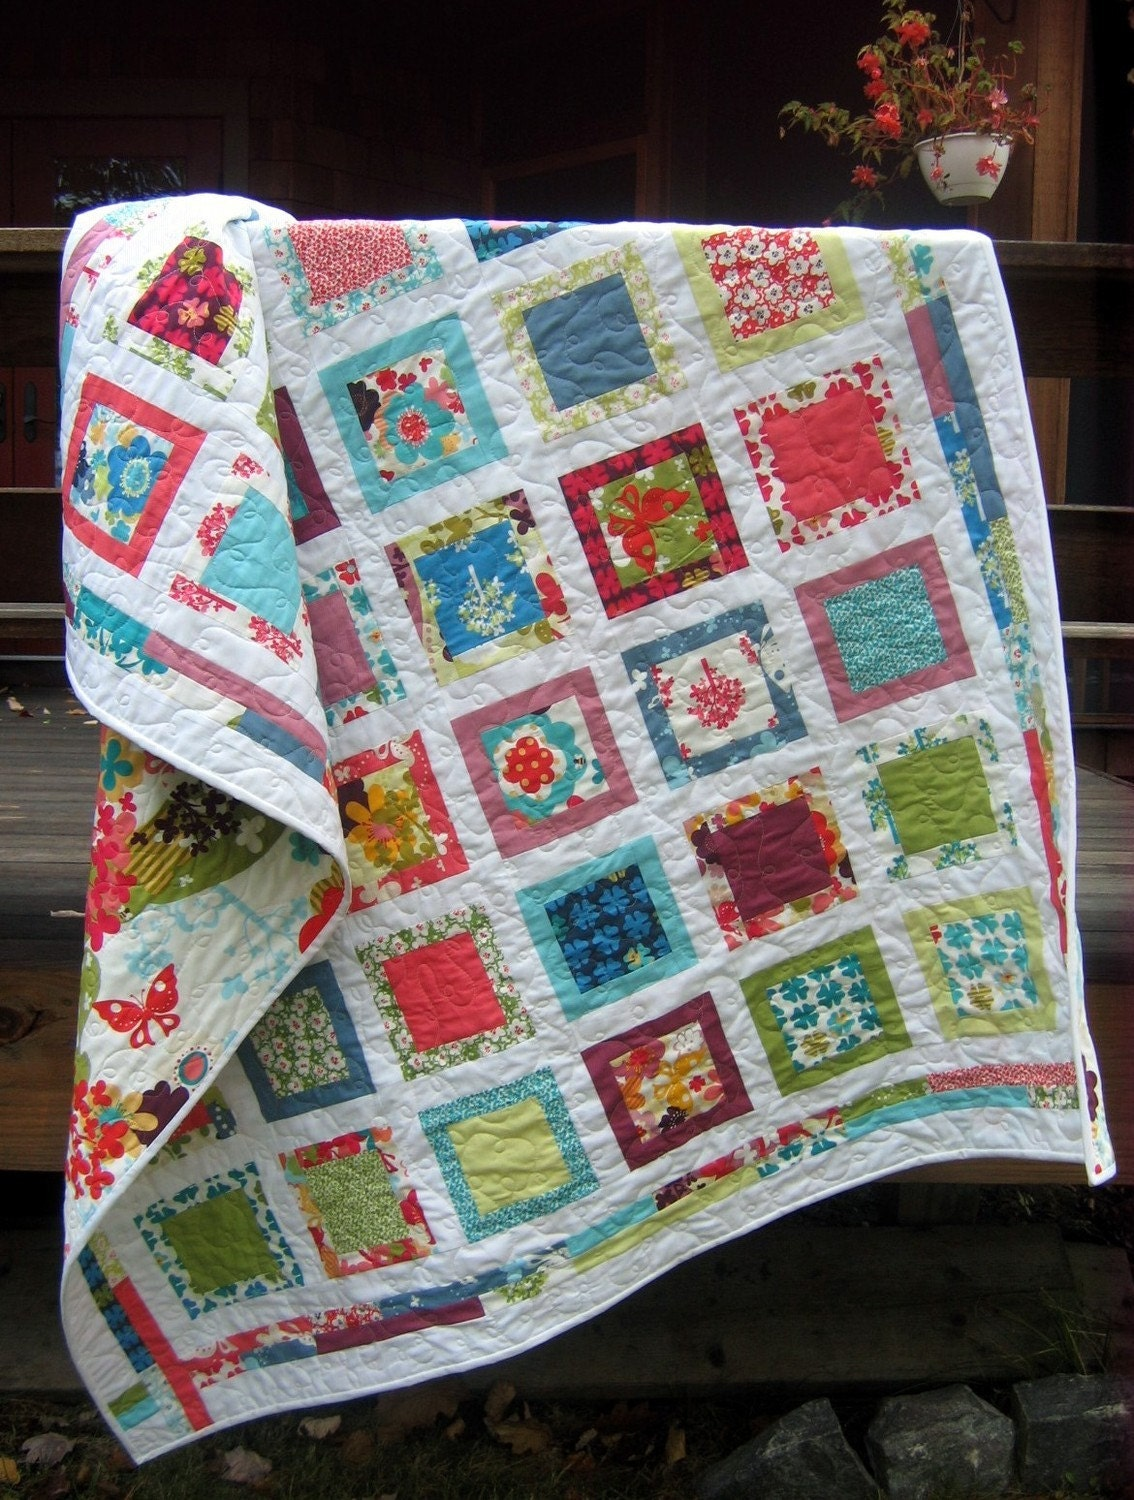 Easy Quilt Patterns With Layer Cakes : Baby or lap QUILT PATTERN Layer Cake Fat Quarters easy eBay